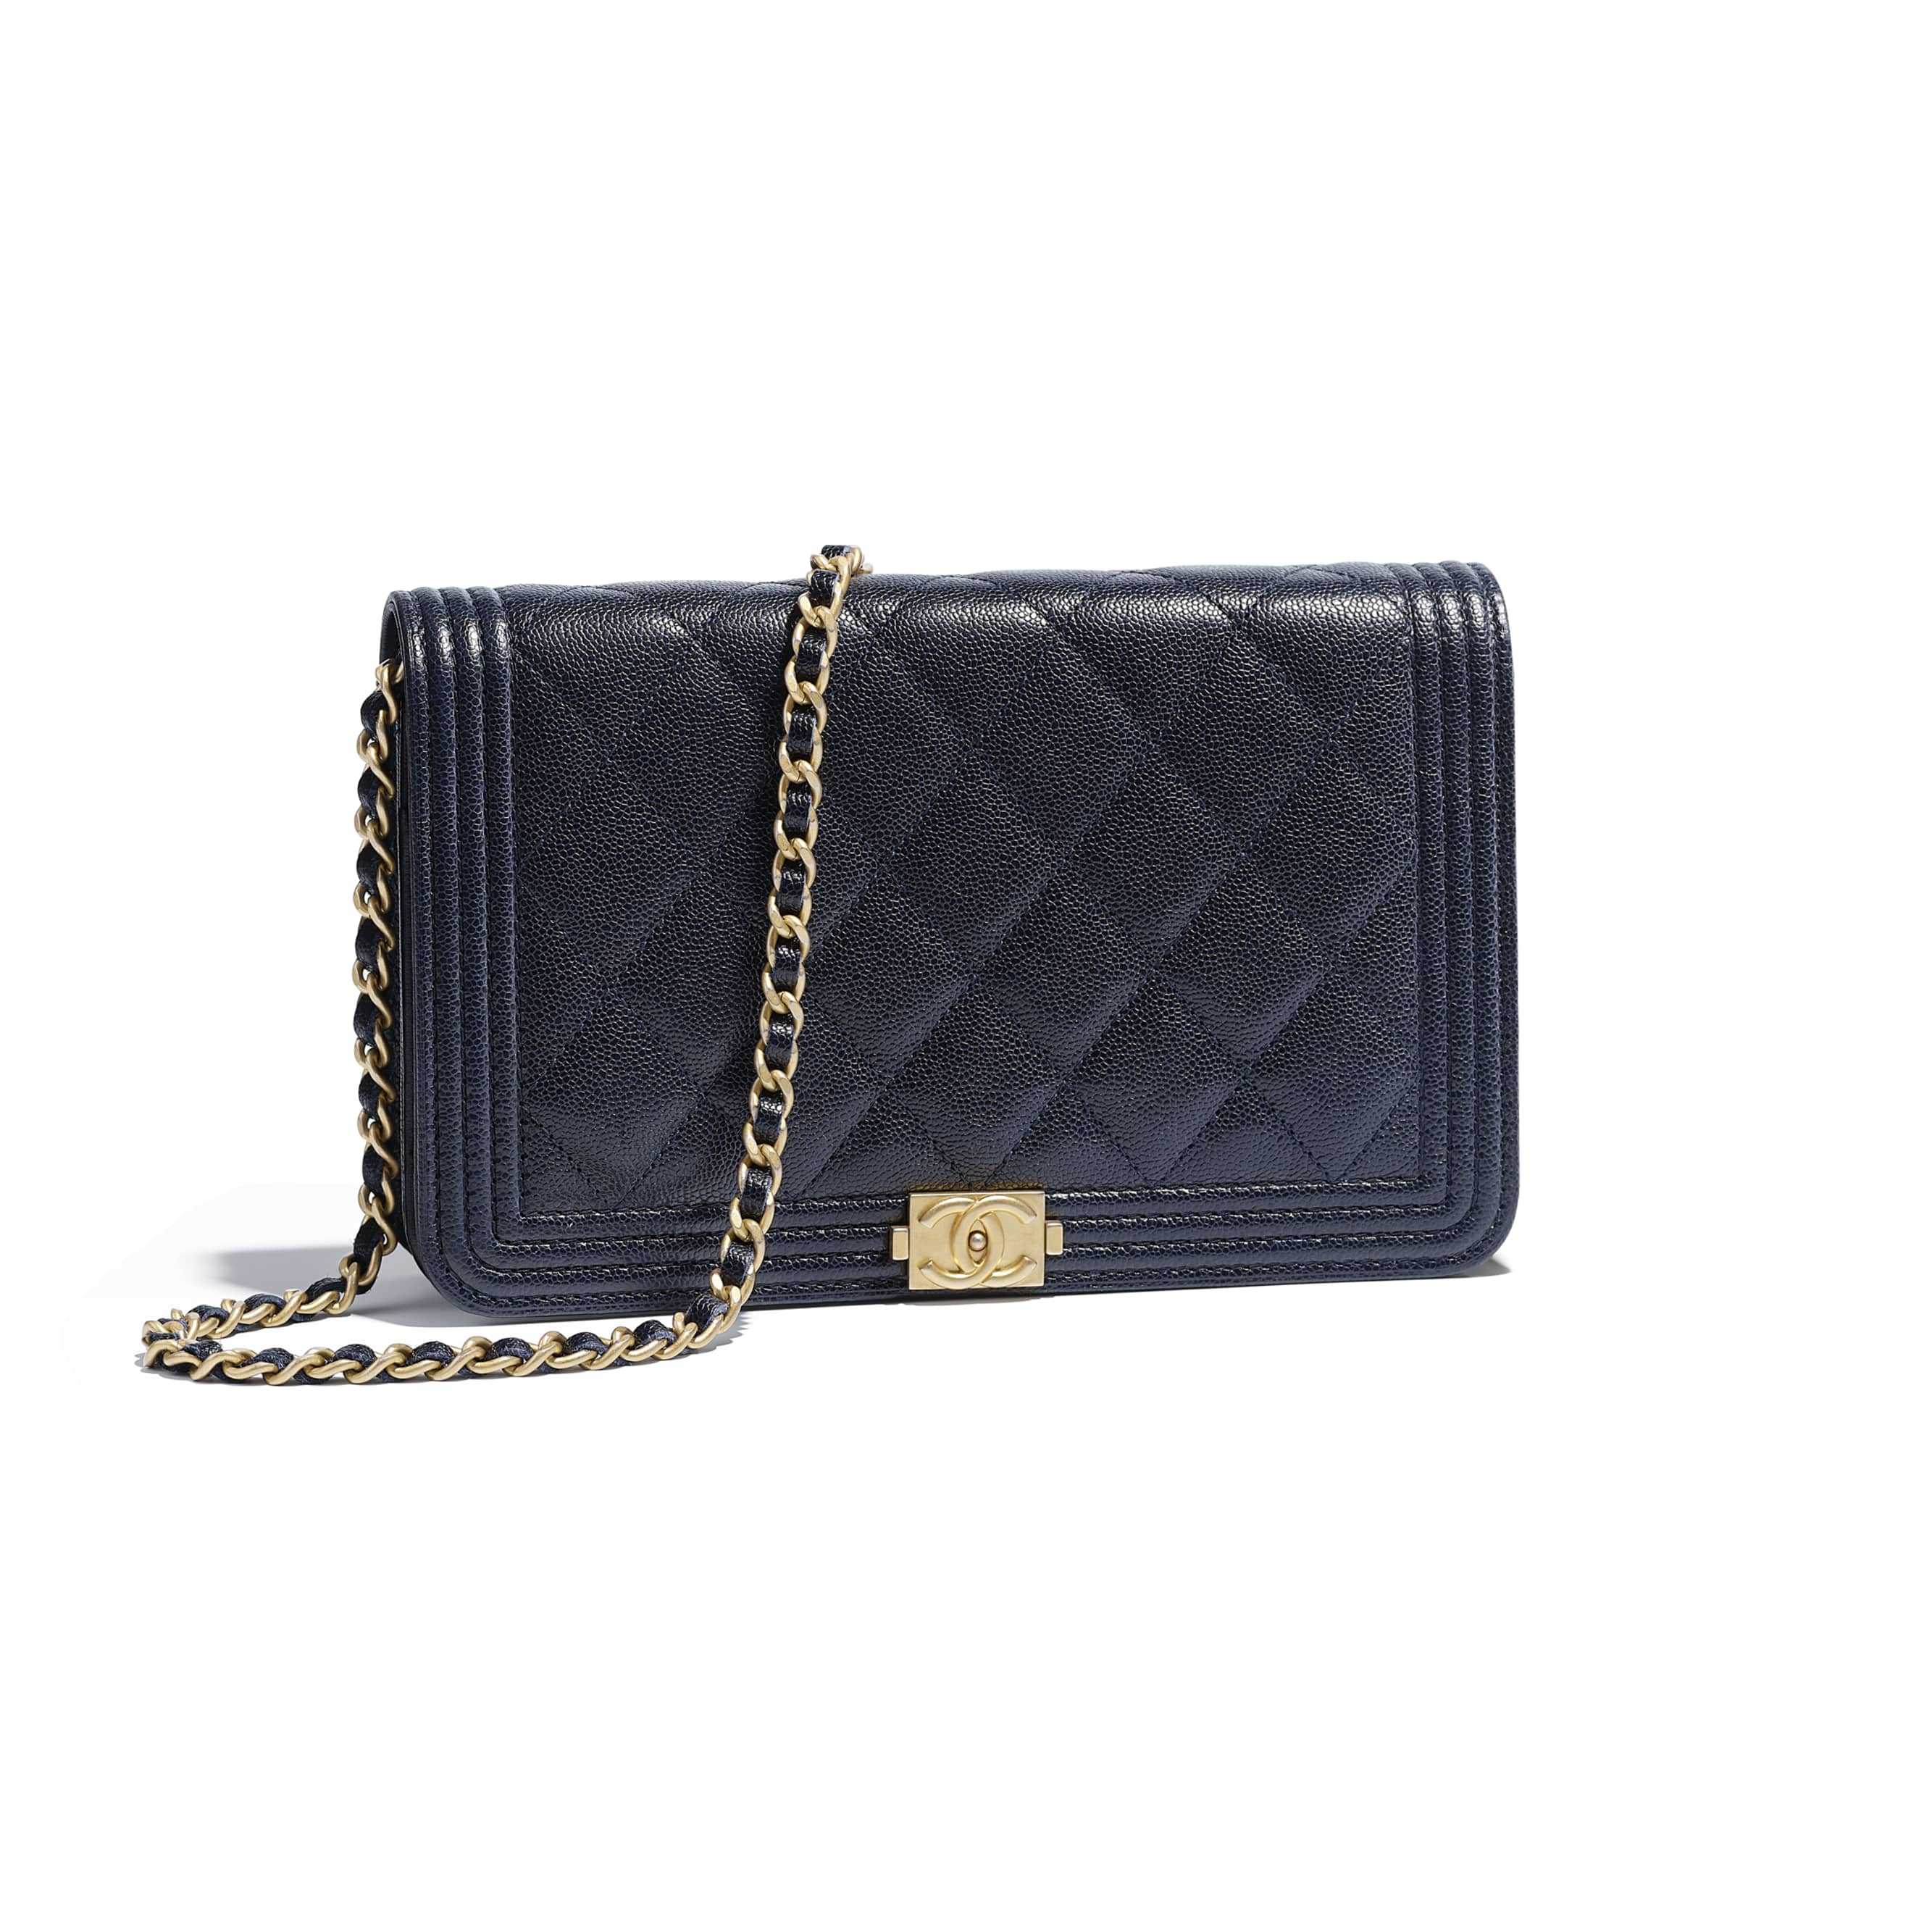 1a7015cef8 boy-chanel-wallet-on-chain-navy-blue-grained-calfskin-gold-tone ...